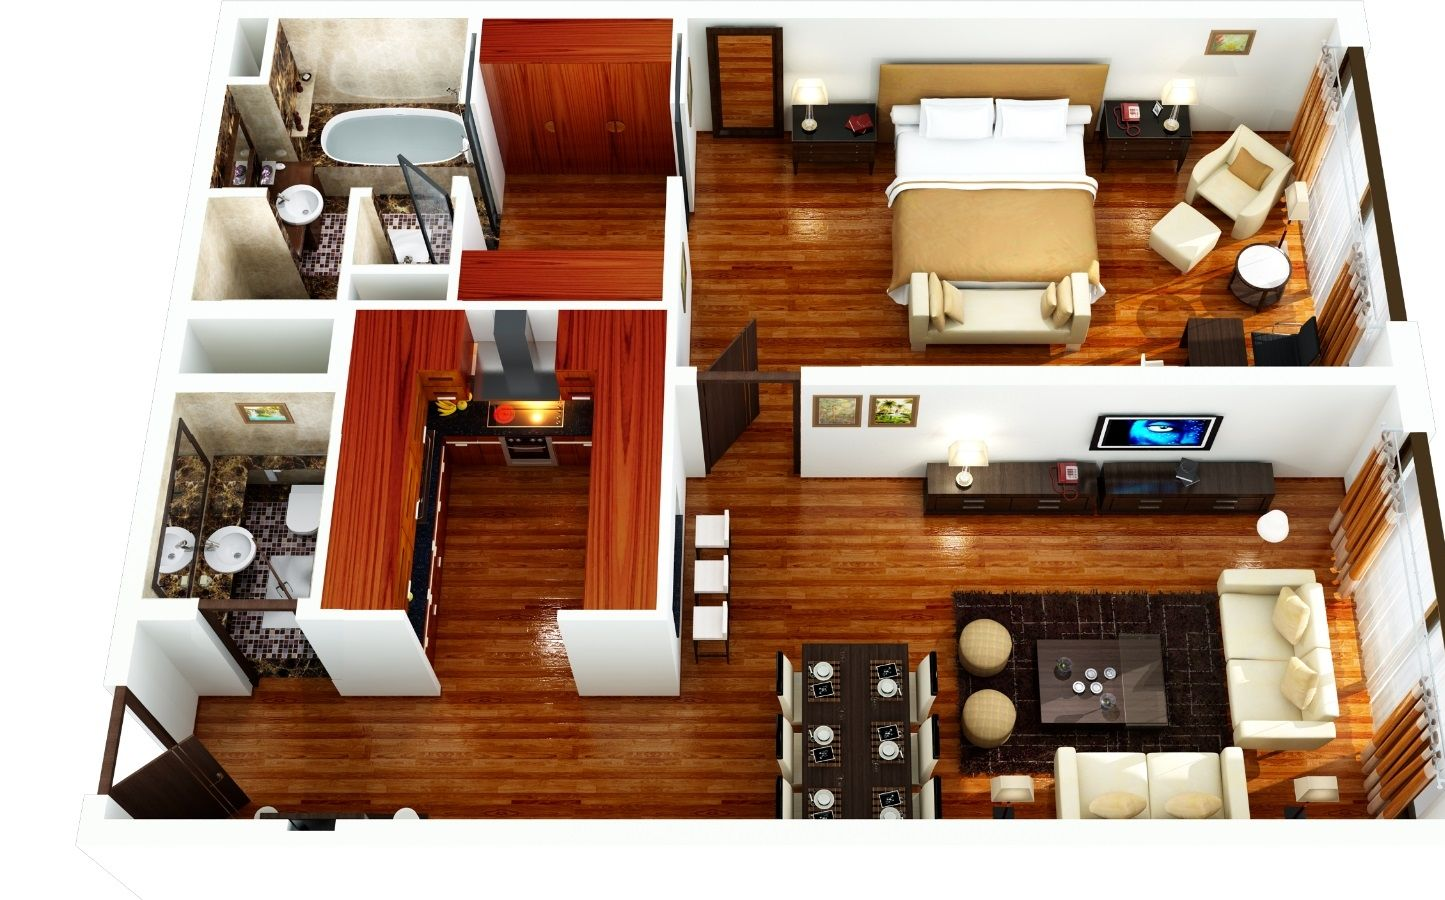 apartments bedroom wohndesign cheapest blendend marvellous for rent one apartment furnished fully exterior decor designs renovation home ideas